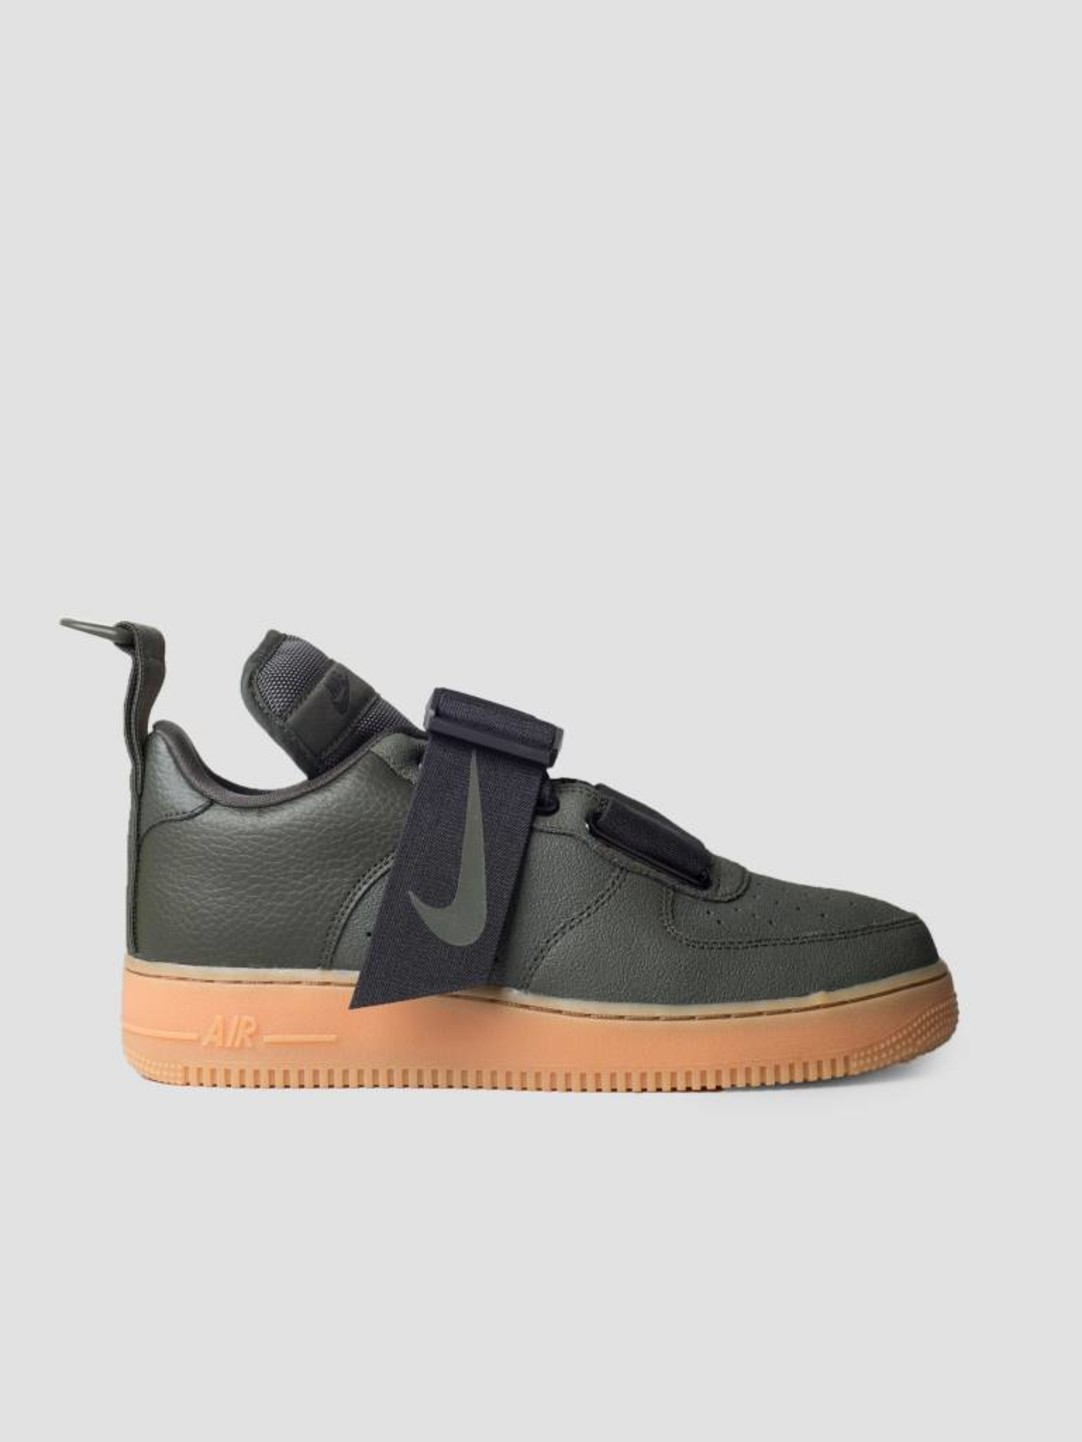 1 Black Nike Force Brown Gum Air 300 Sequoia Med Utility Ao1531 mn08wNv